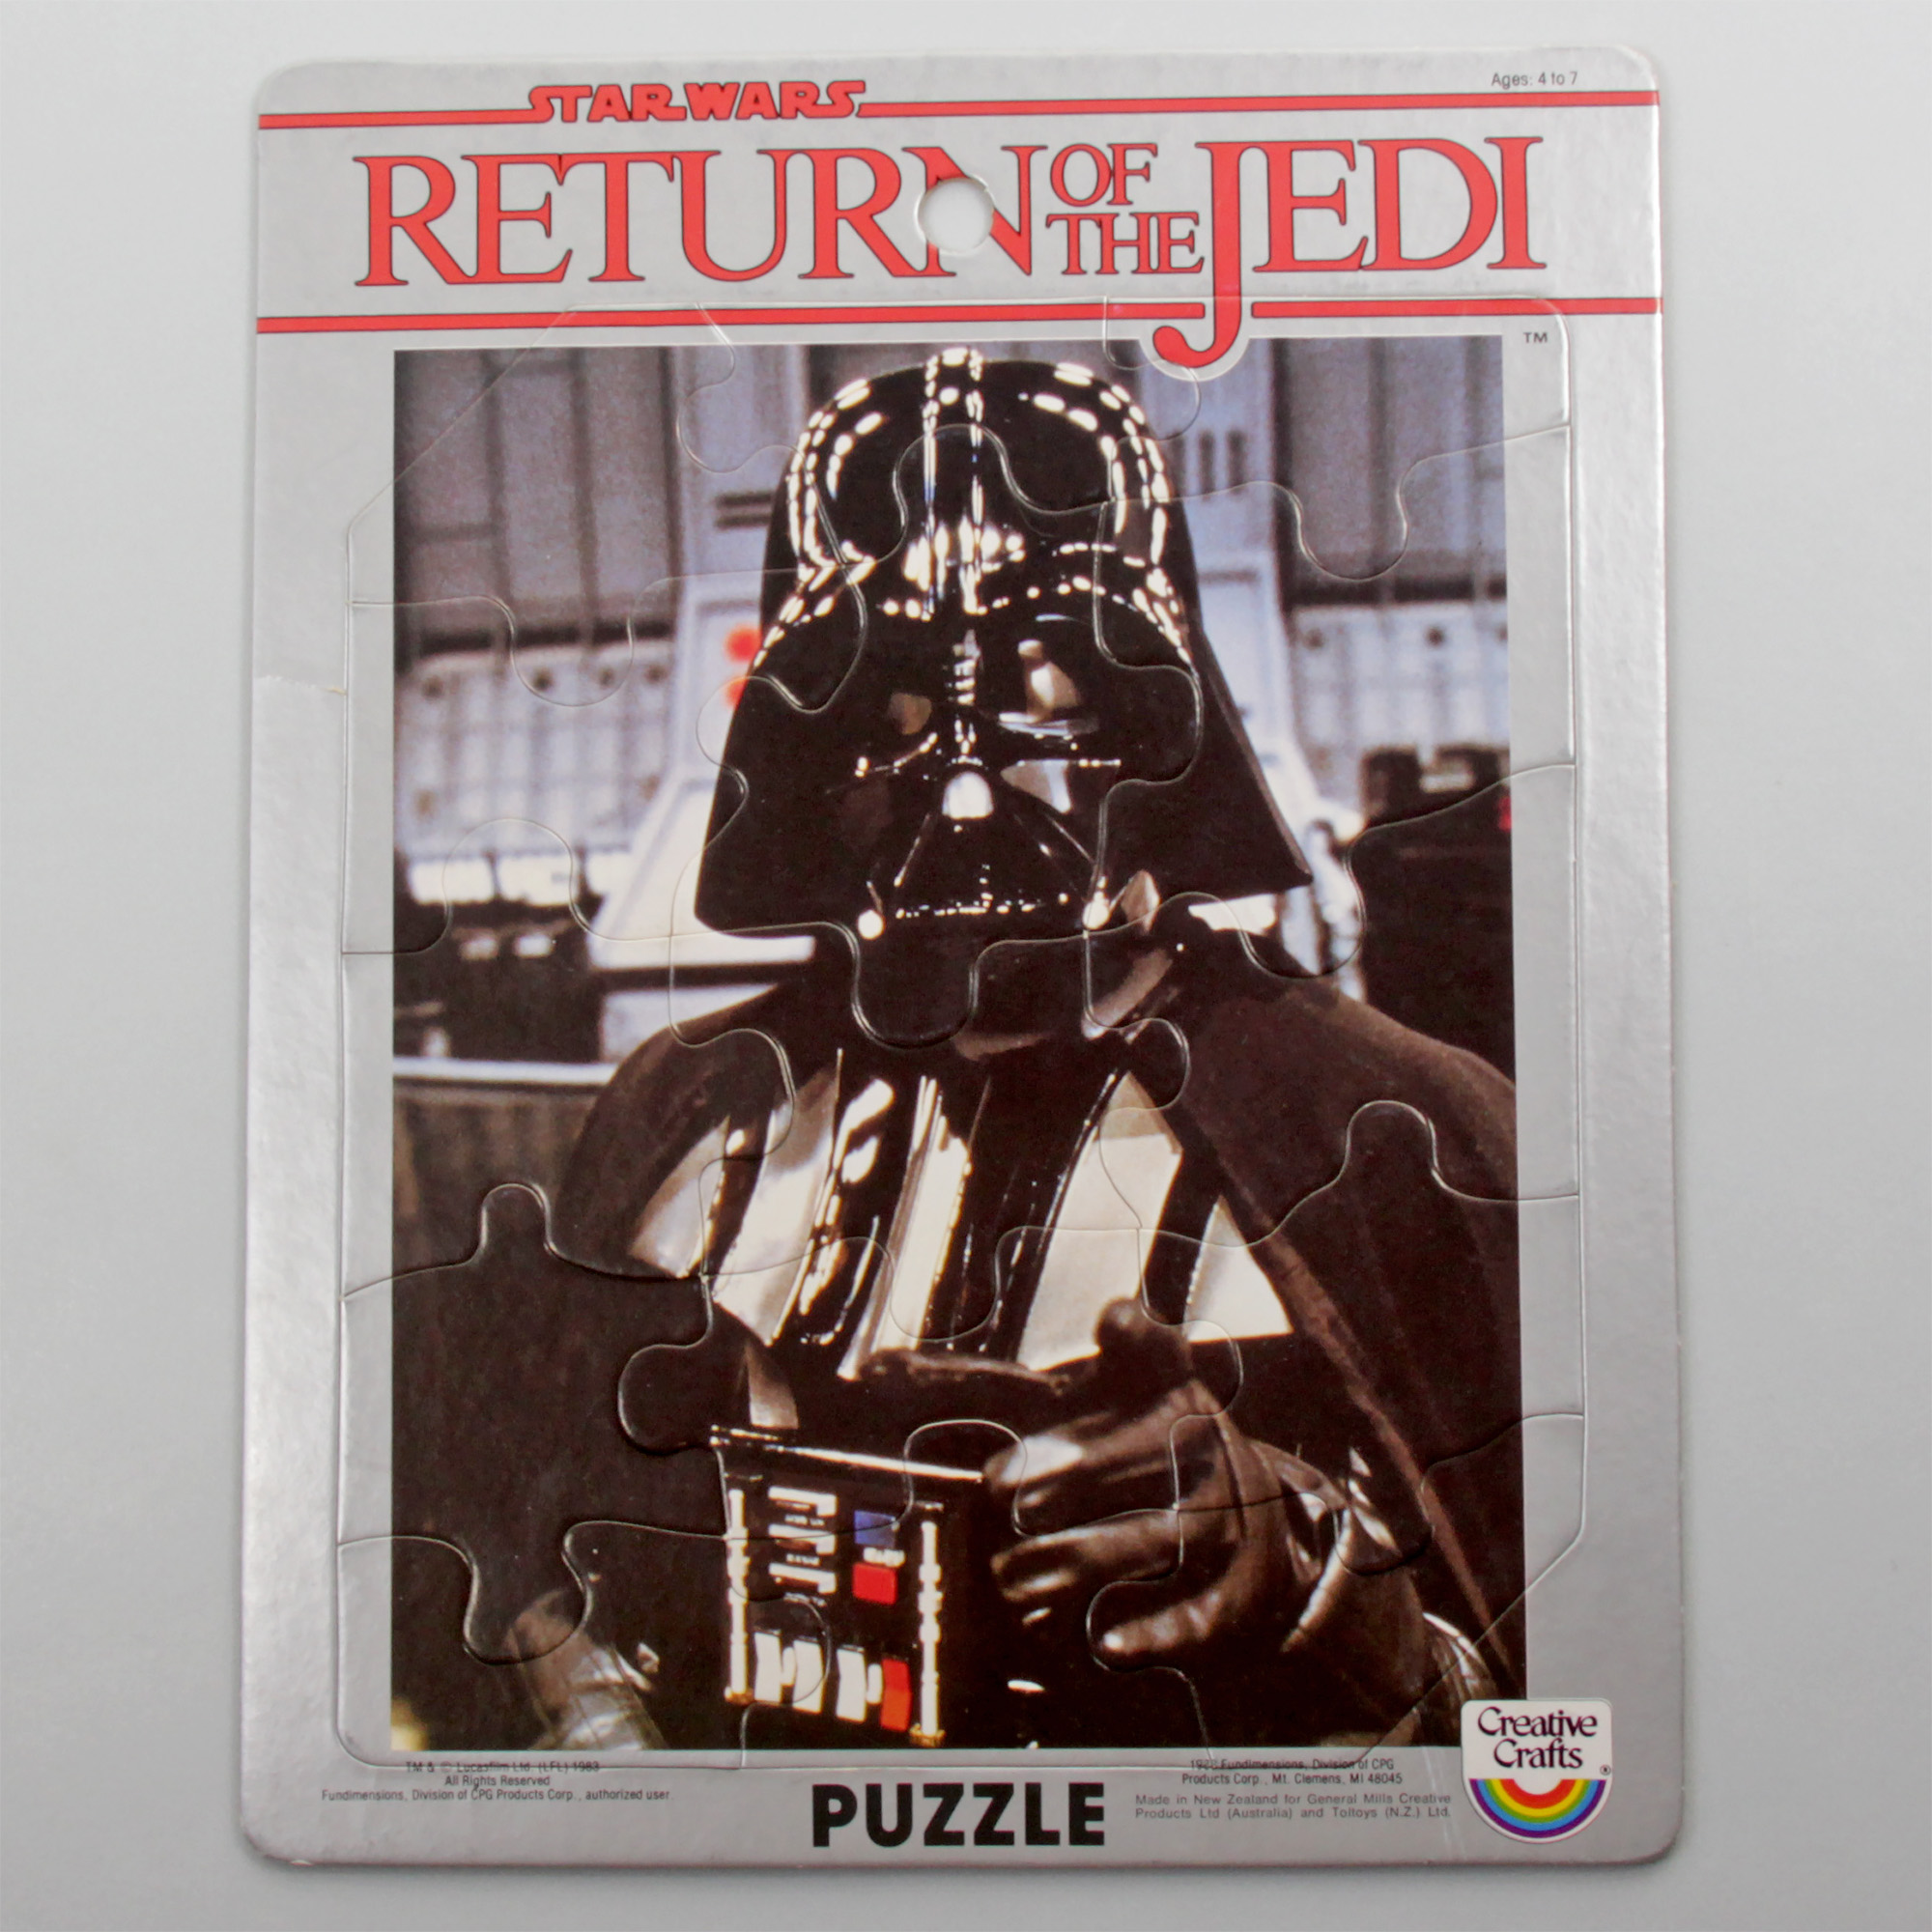 Creative Crafts/Toltoys Return of the Jedi Jigsaw Puzzle